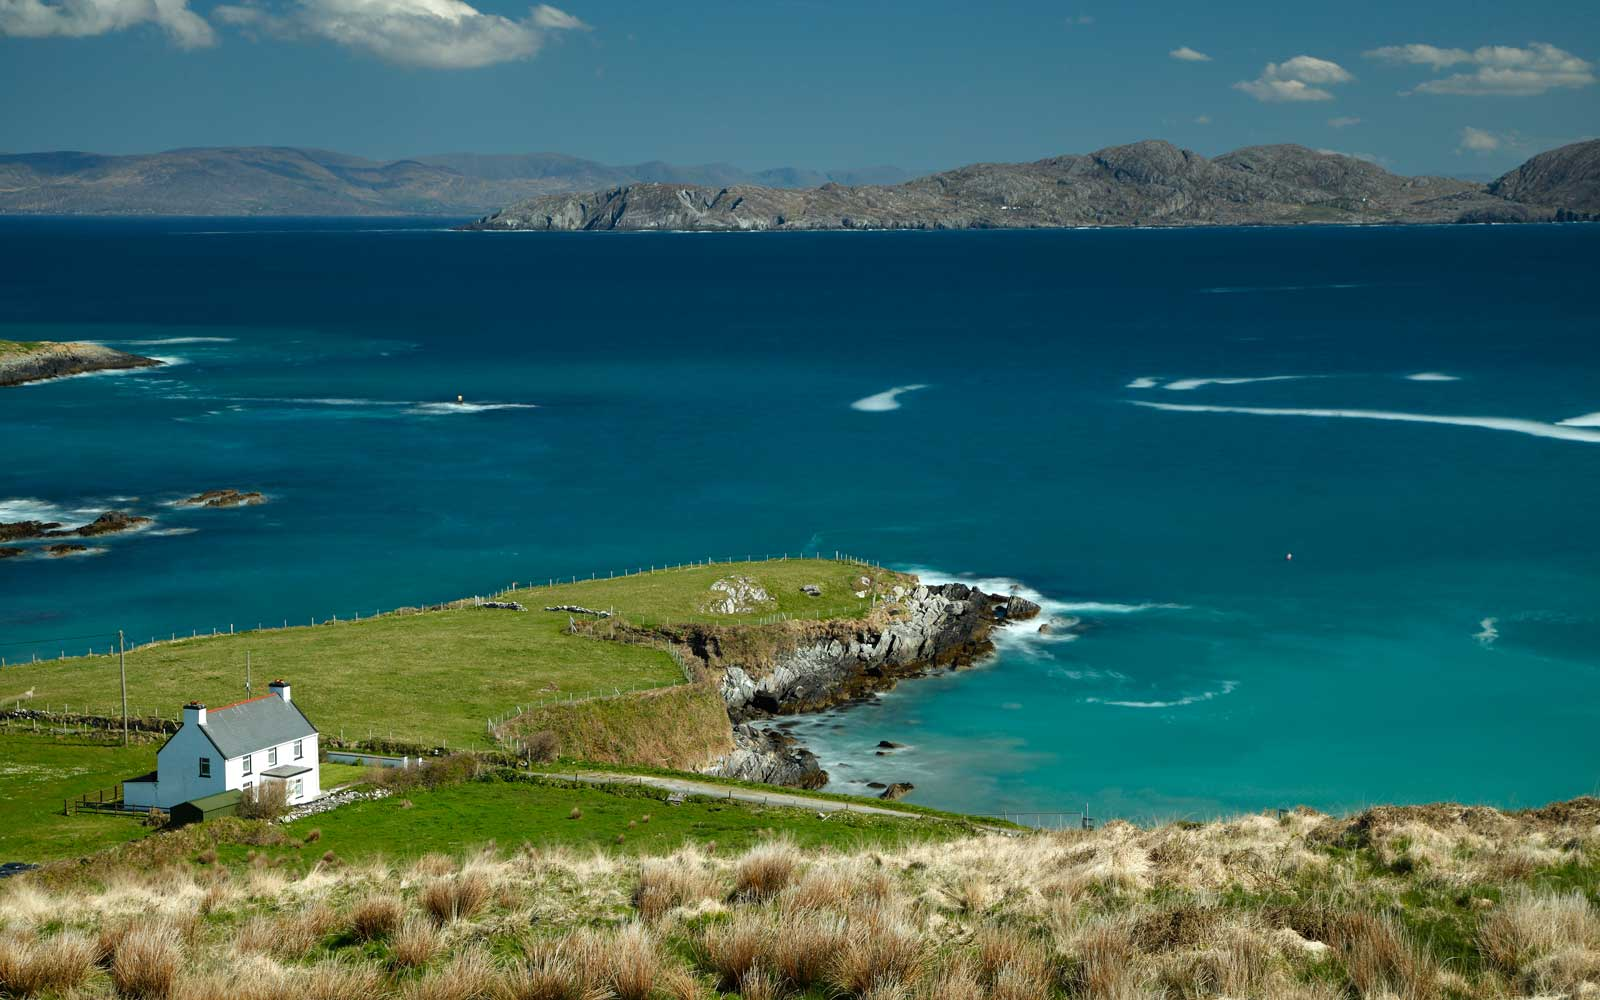 Beara peninsula, on the Wild Atlantic Way coastal route, in West Cork.